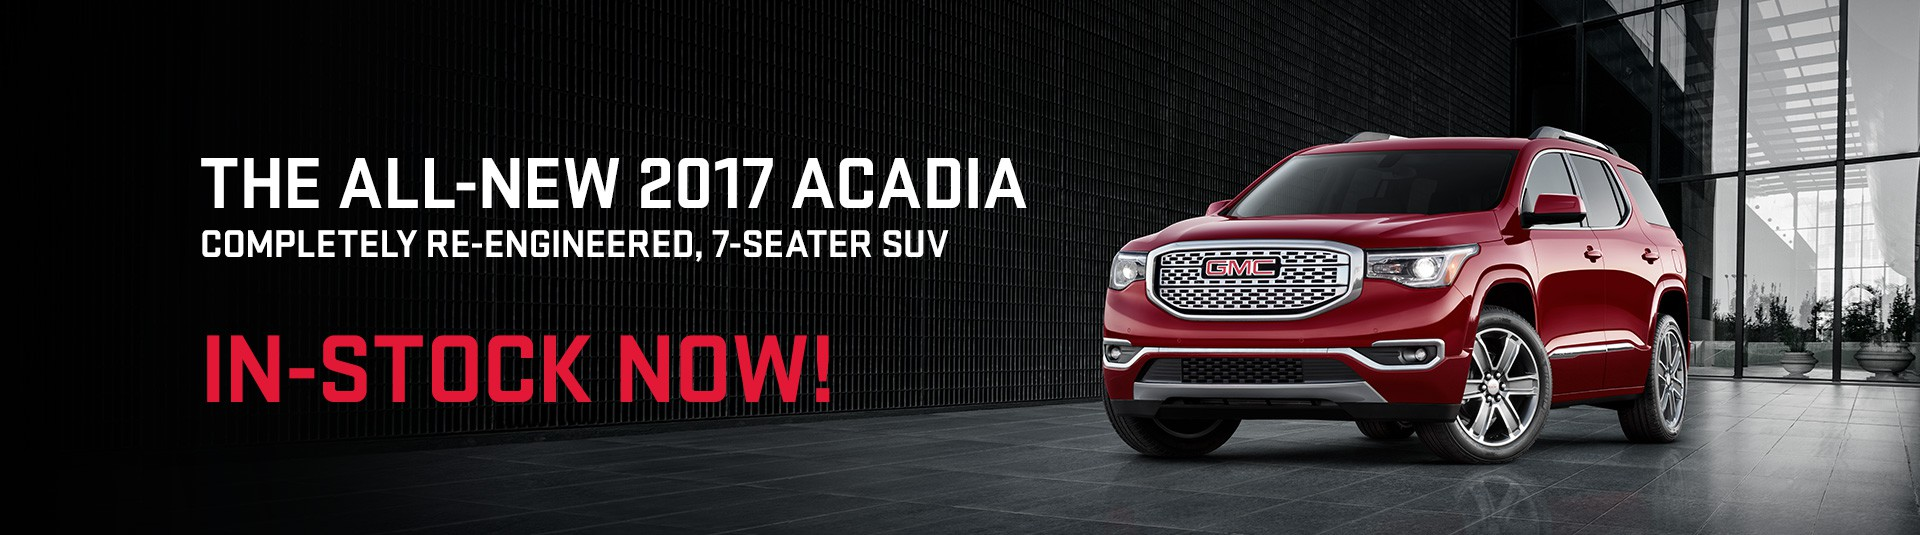 The all-new 2017 Acadia completely re-engineered, 7-seater SUV. In stock now!